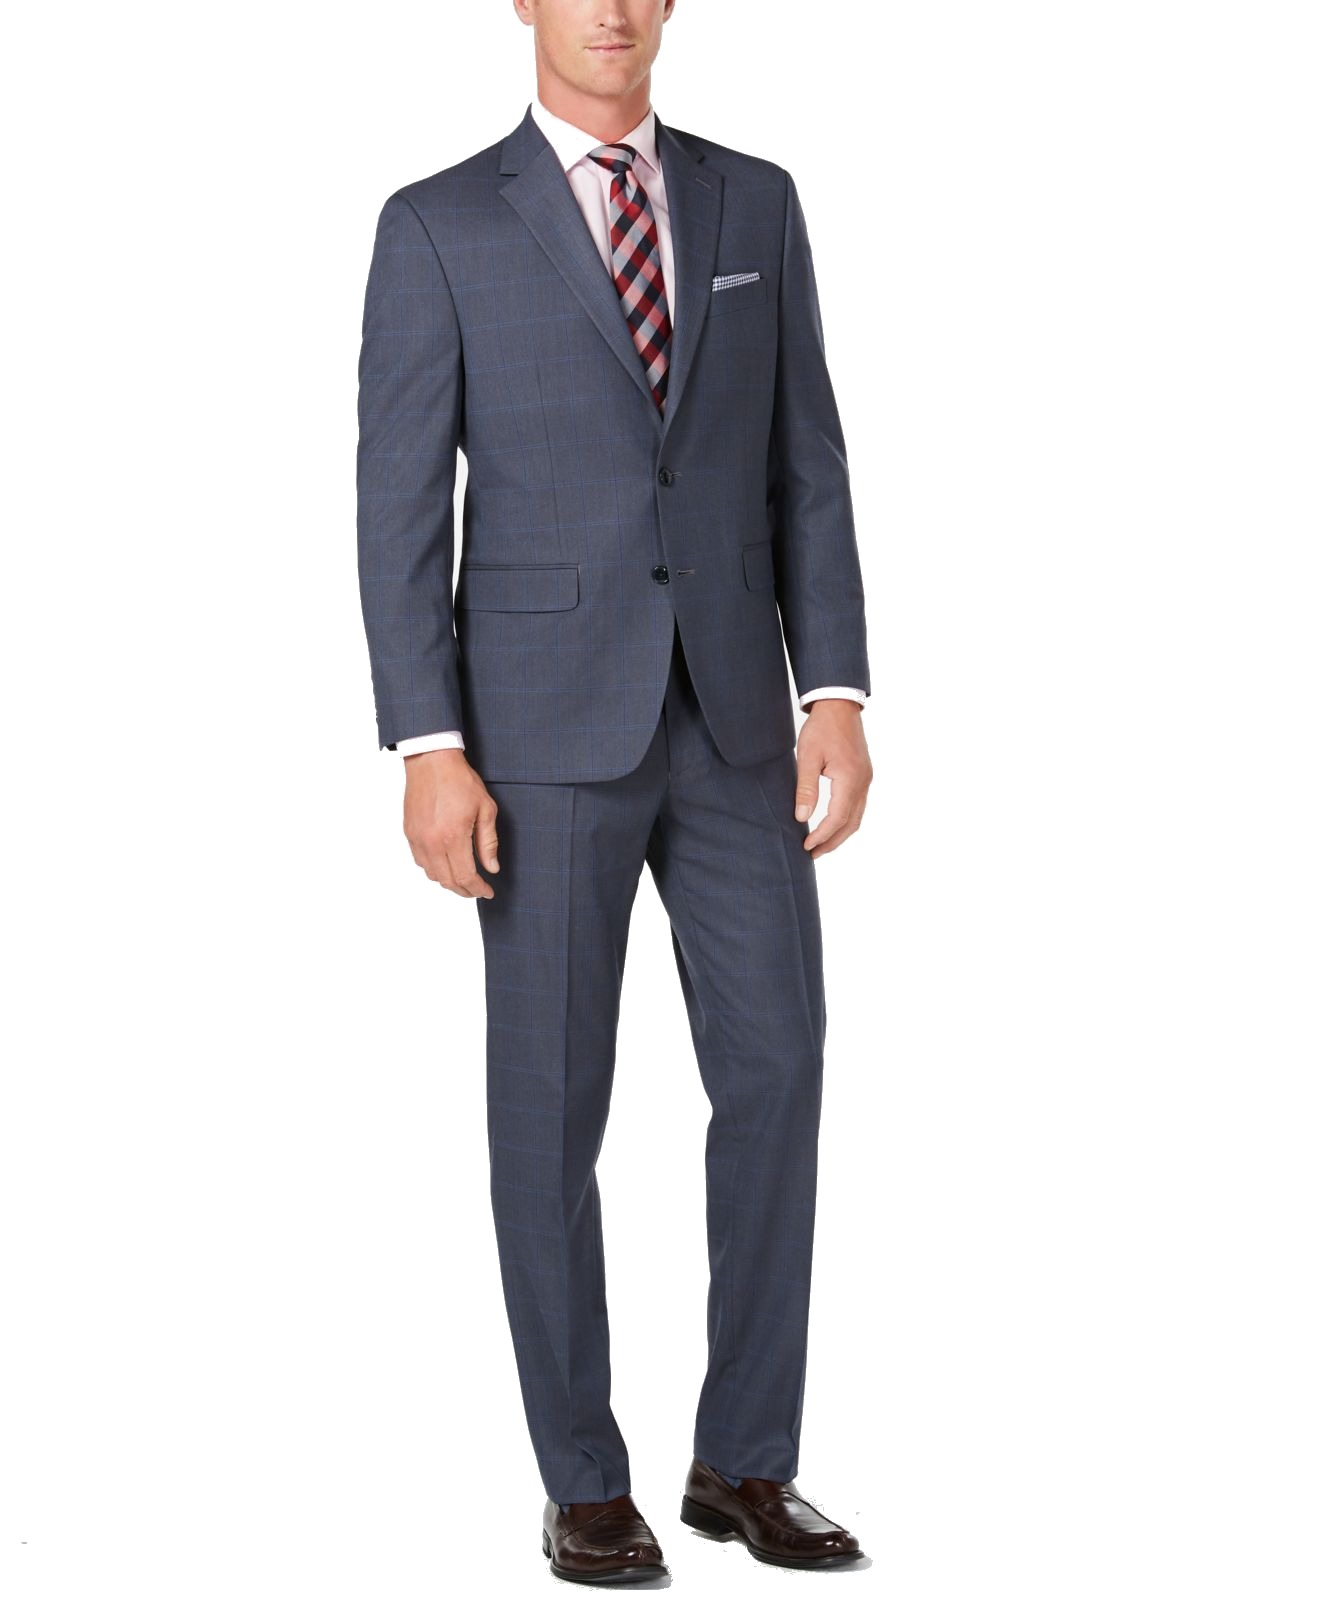 Club Room Mens Suit Set Blue Size 38 2 Piece Regular Fit Windowpane $395 #213